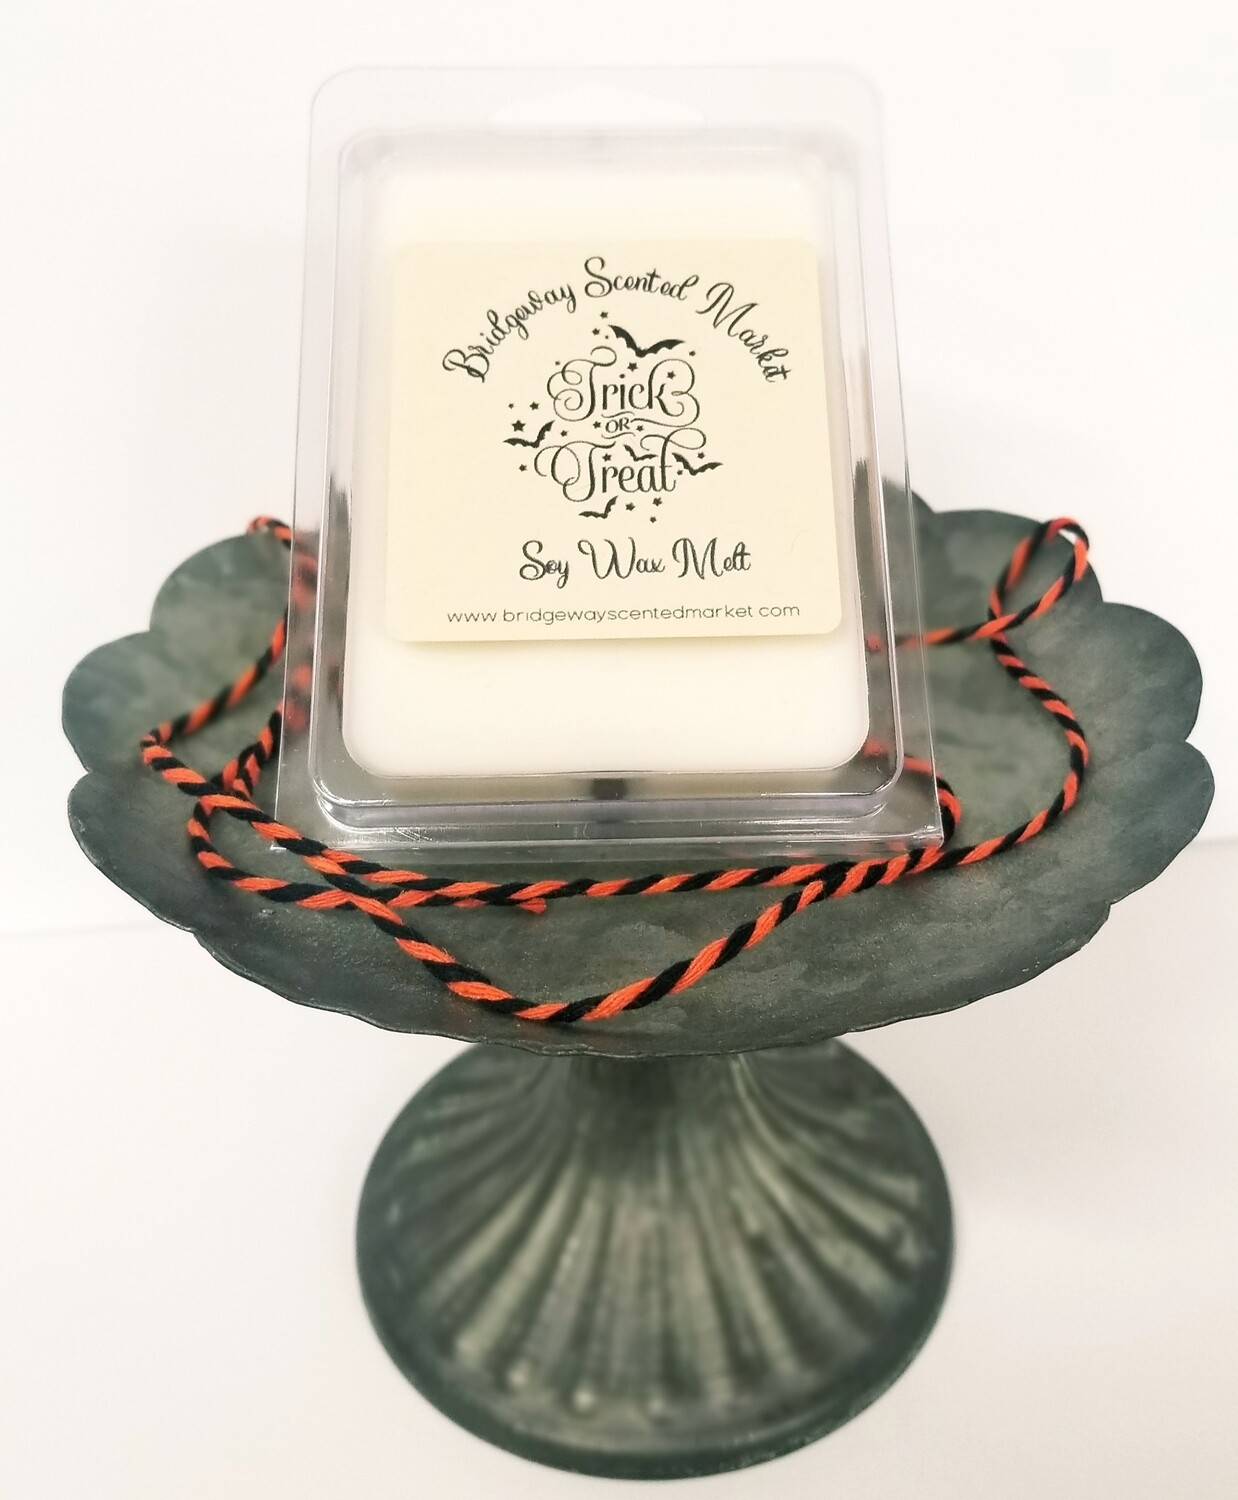 Limited Edition Trick or Treat Soy Wax Melt